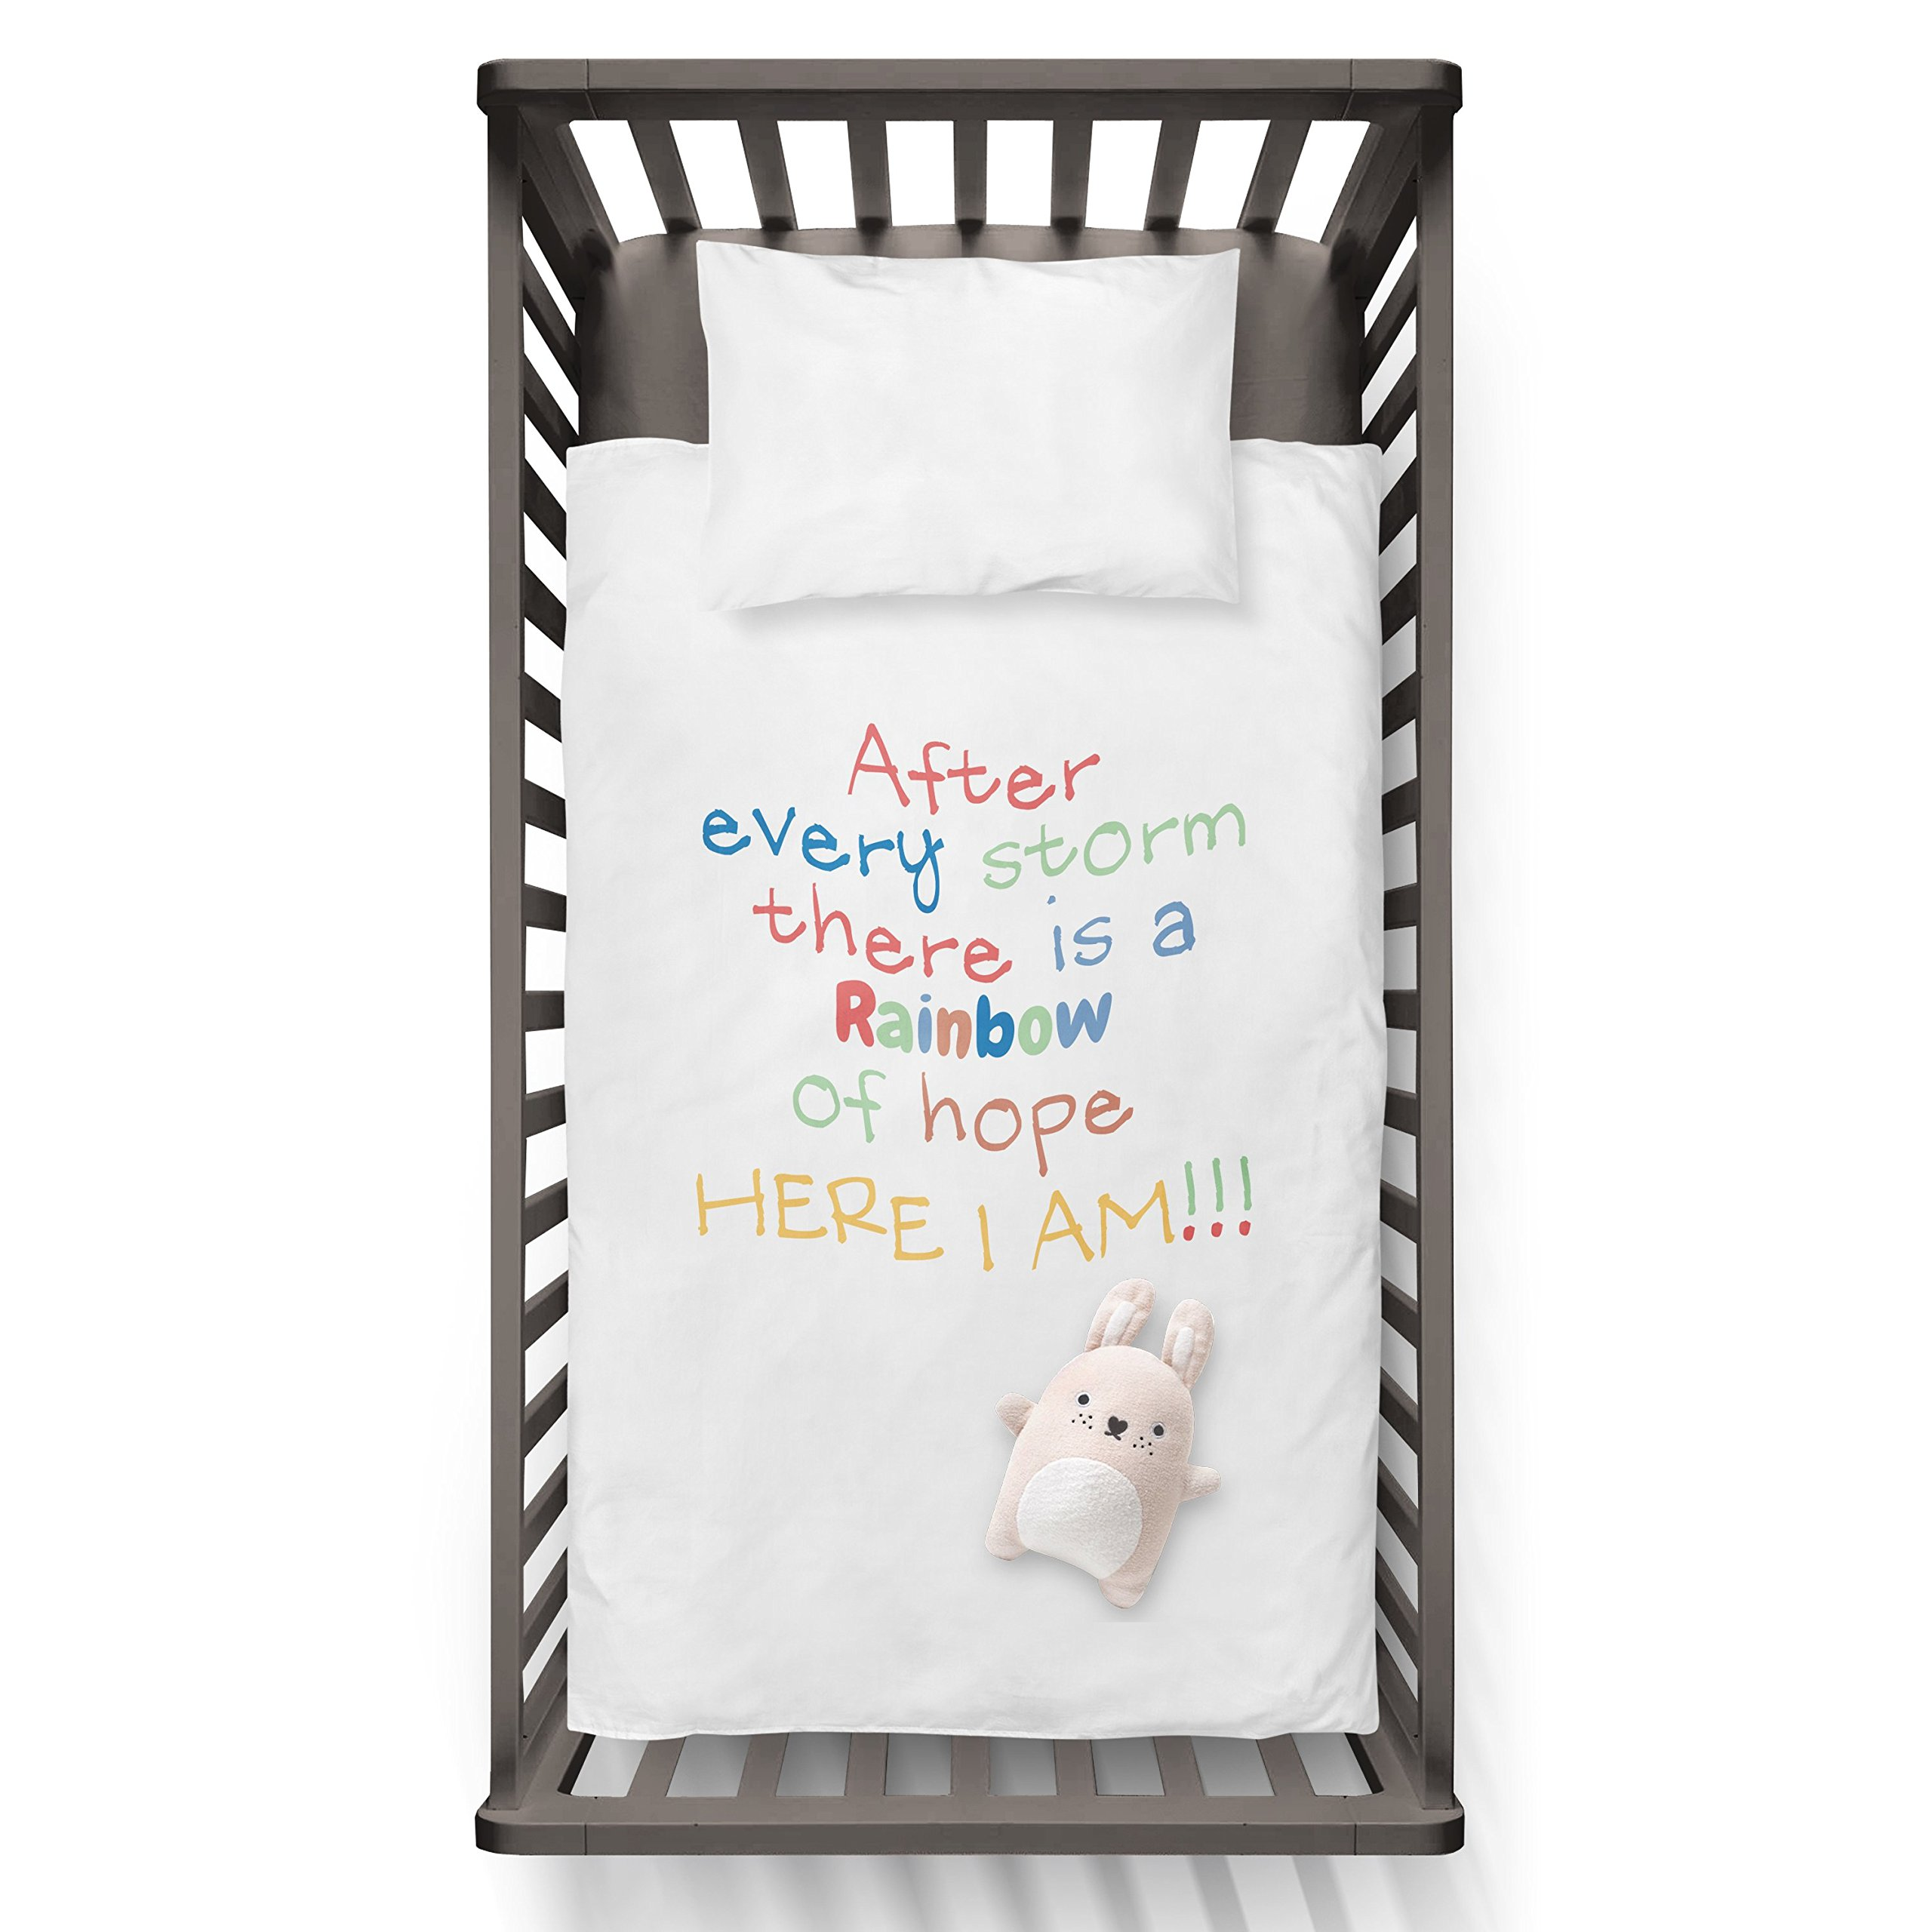 After Every Storm There Is A Rainbow Of Hope Here I Am!!! Funny Humor Hip Baby Duvet /Pillow set,Toddler Duvet,Oeko-Tex,Personalized duvet and pillow,Oraganic,gift